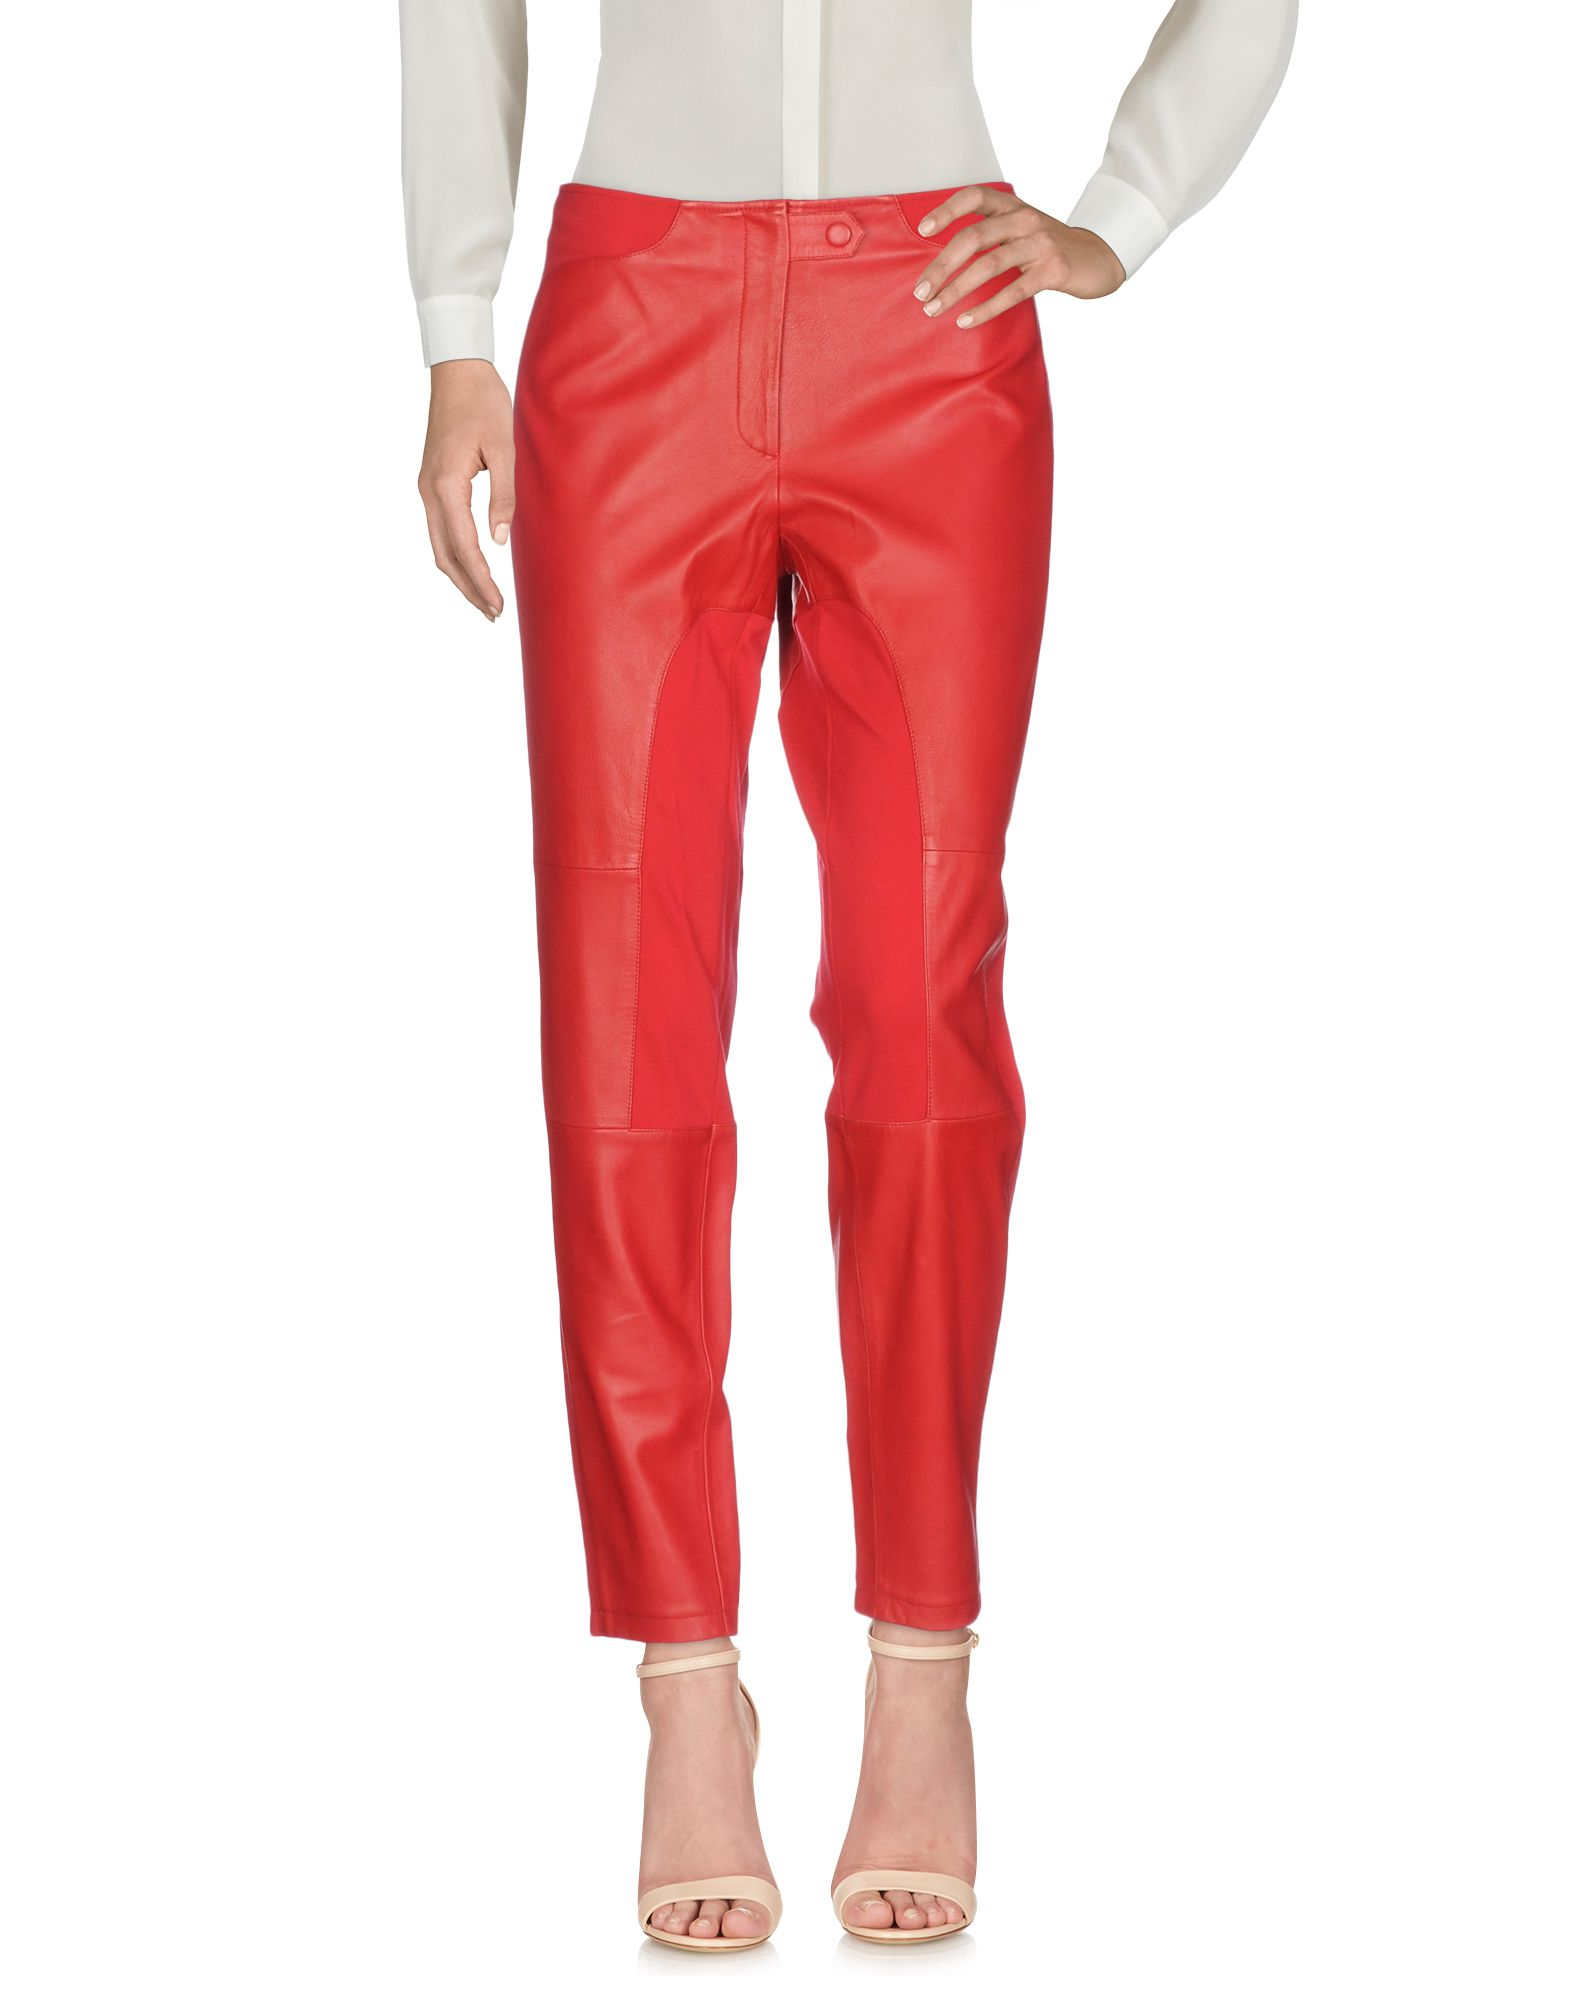 SOLD OUT Pantalone Moschino Cheap And Chic Donna - Acquista online su ELWEanoBcn